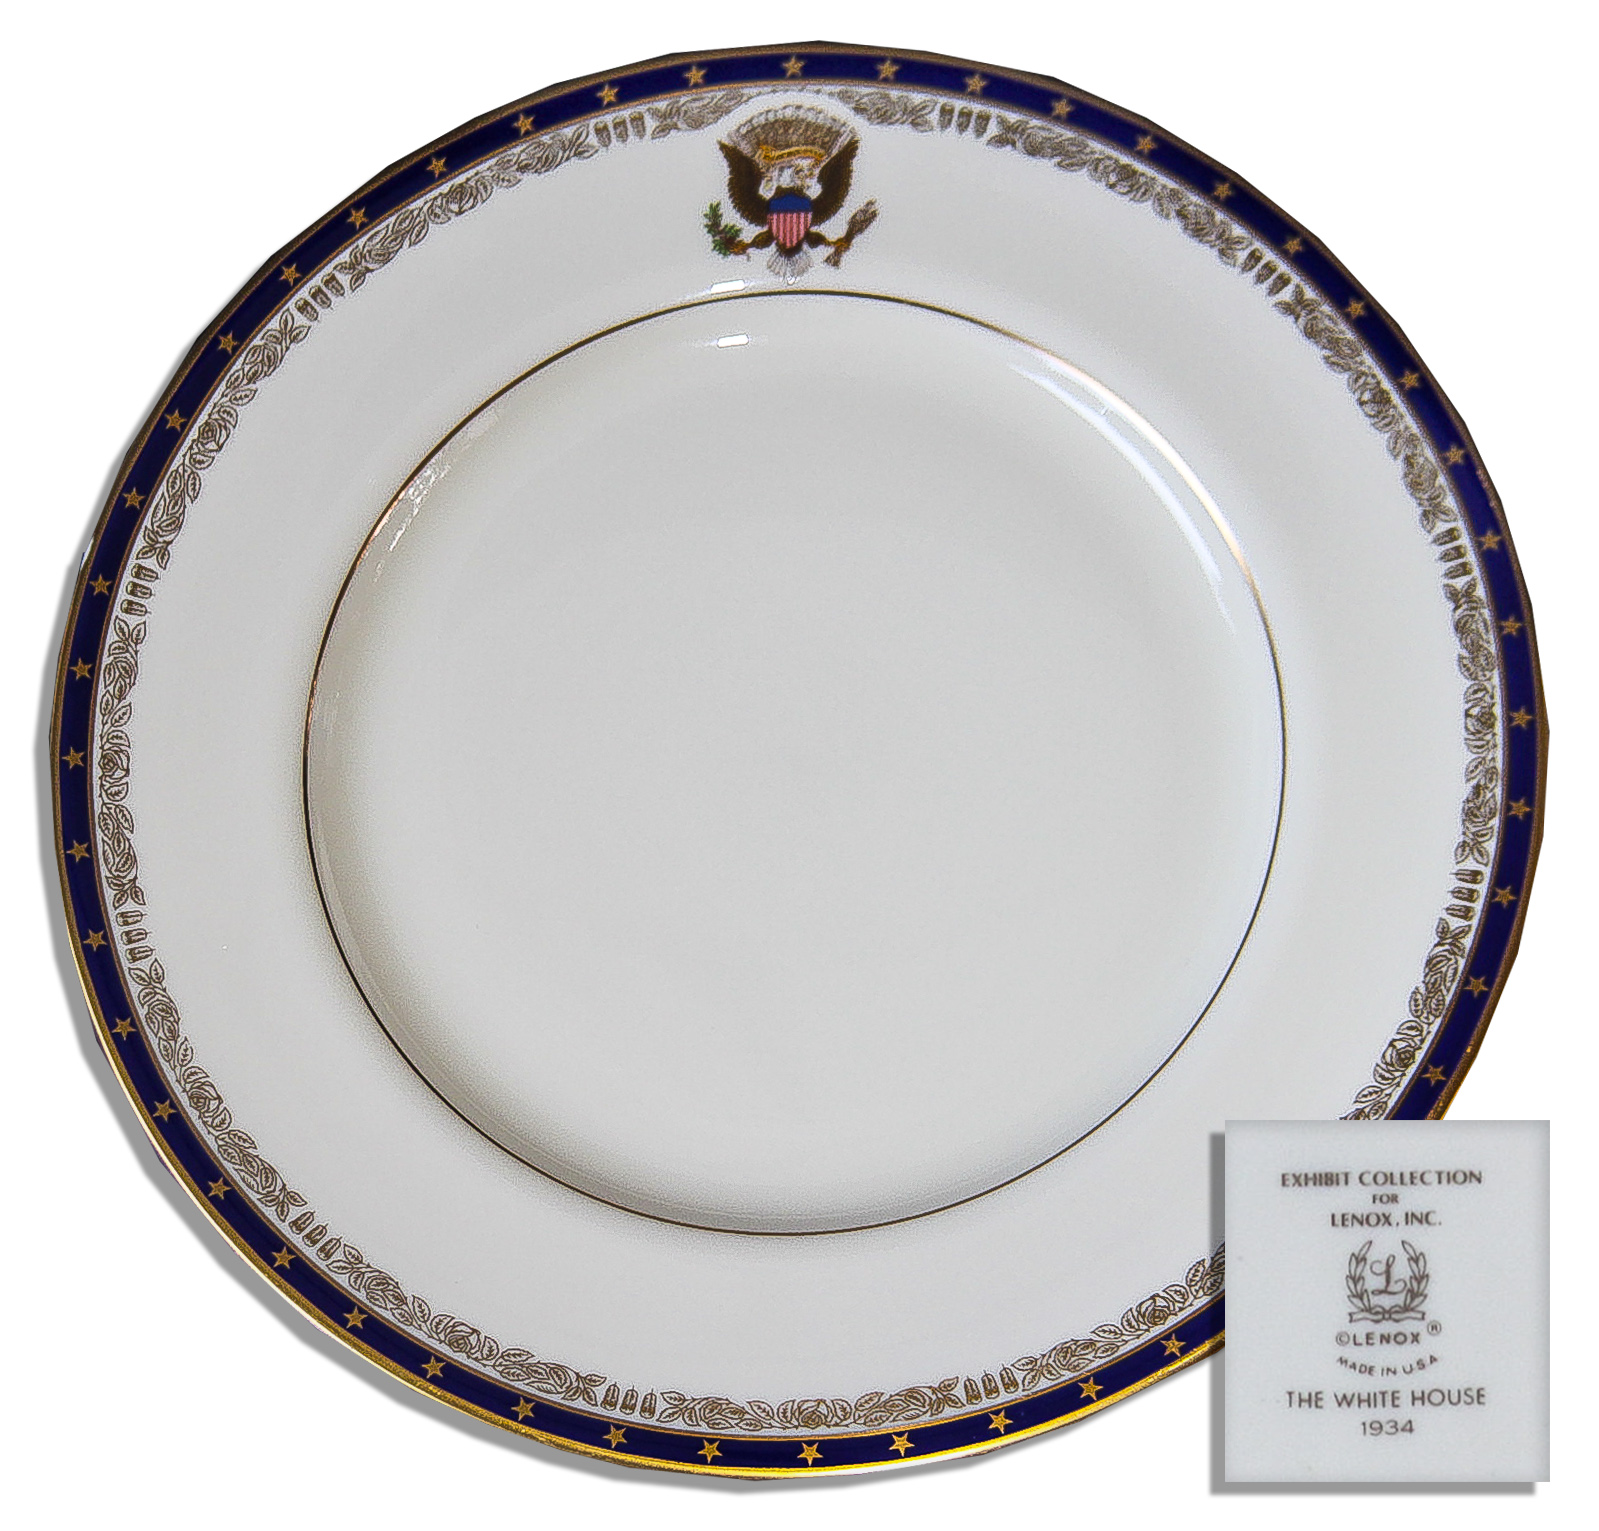 Franklin D. Roosevelt White House Exhibit China -- Dinner Plate by Lenox ...  sc 1 st  Nate D Sanders & Lot Detail - Franklin D. Roosevelt White House Exhibit China ...